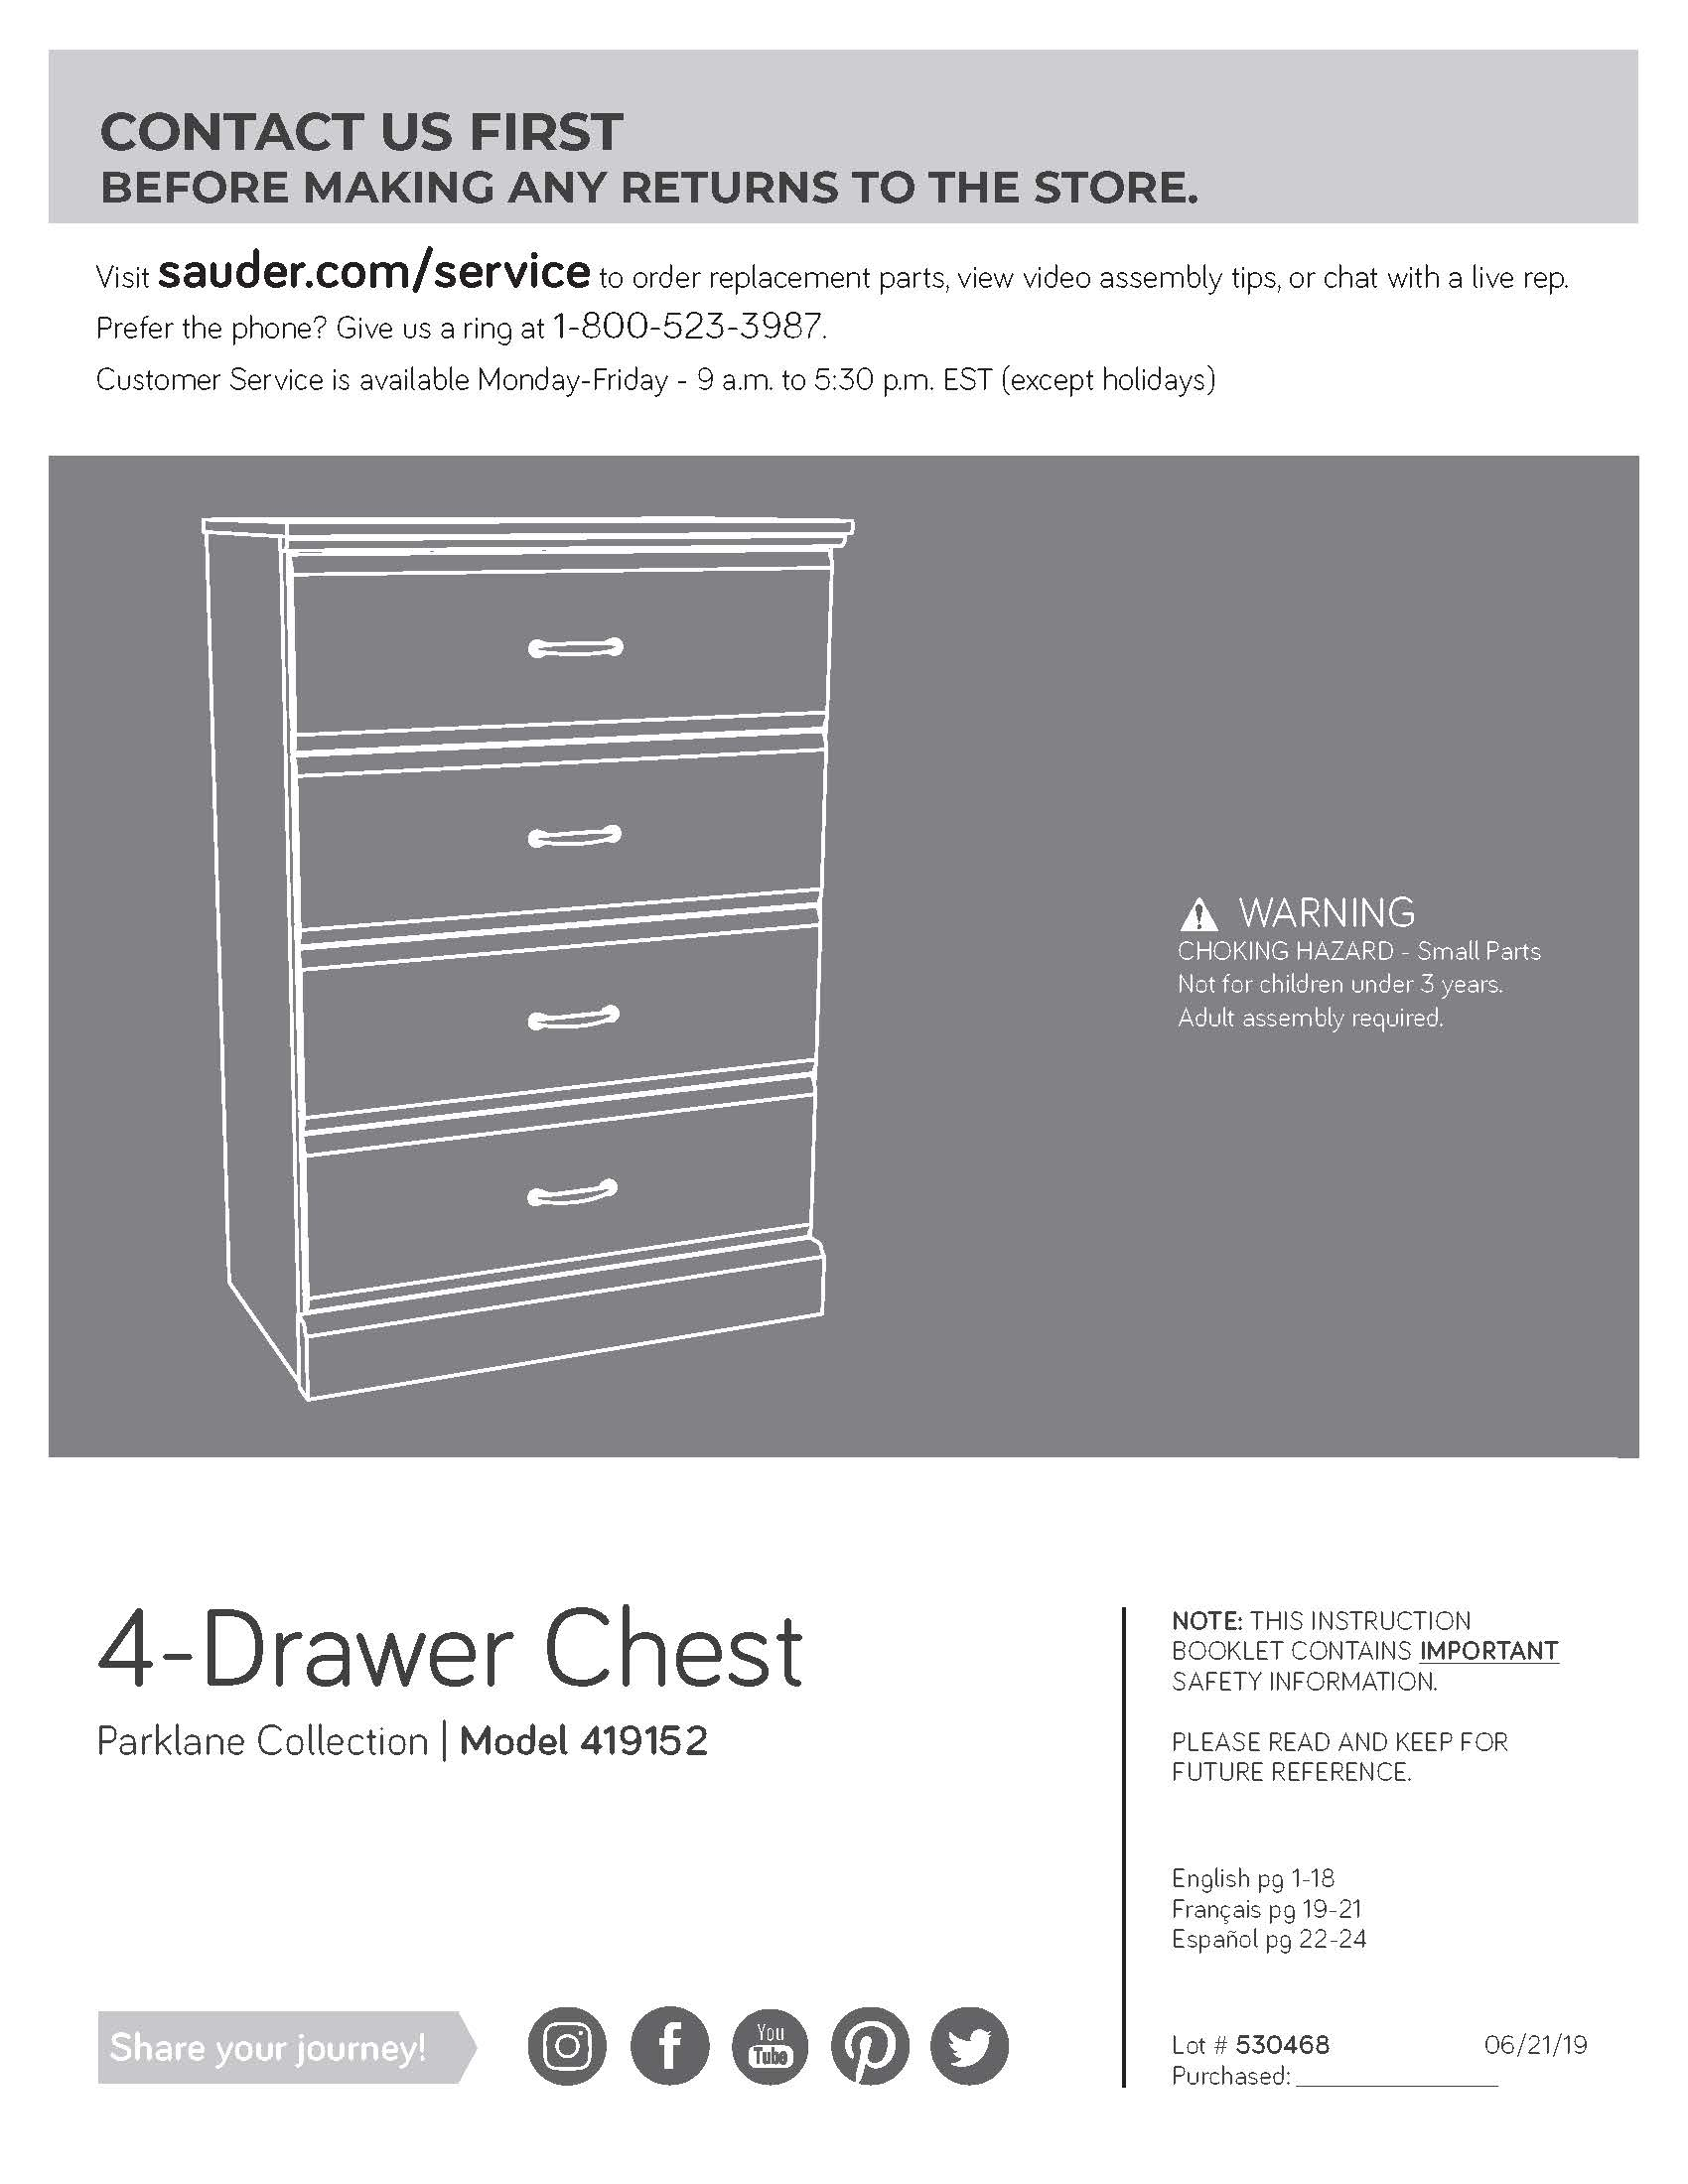 sauder 4 drawer chest 419152 instructions